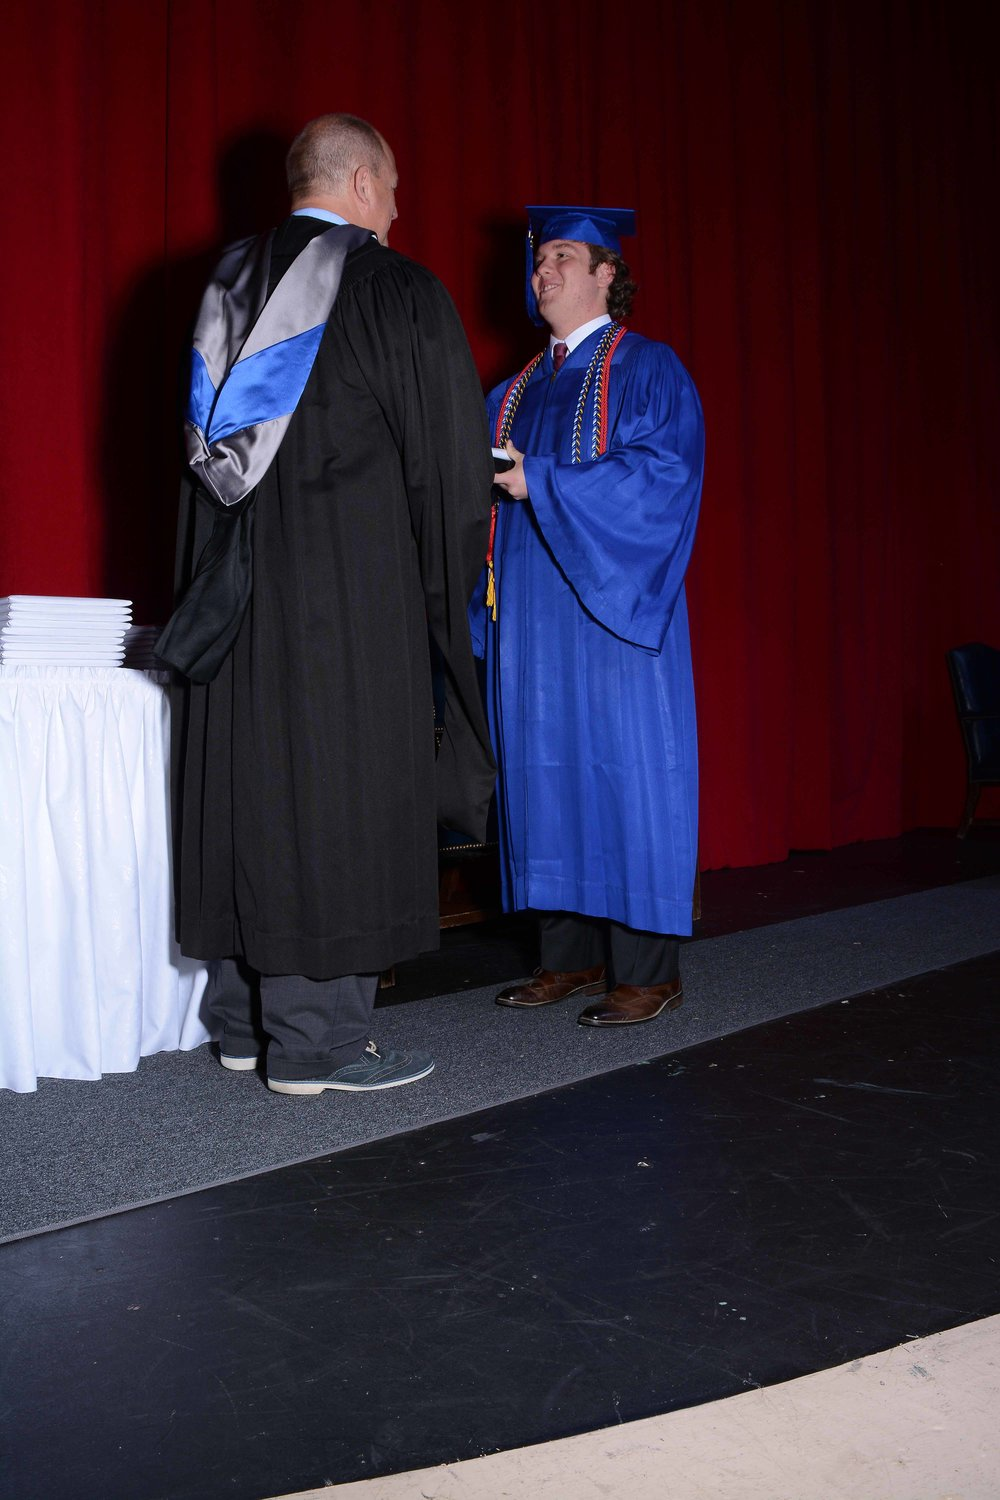 May14 Commencement18.jpg